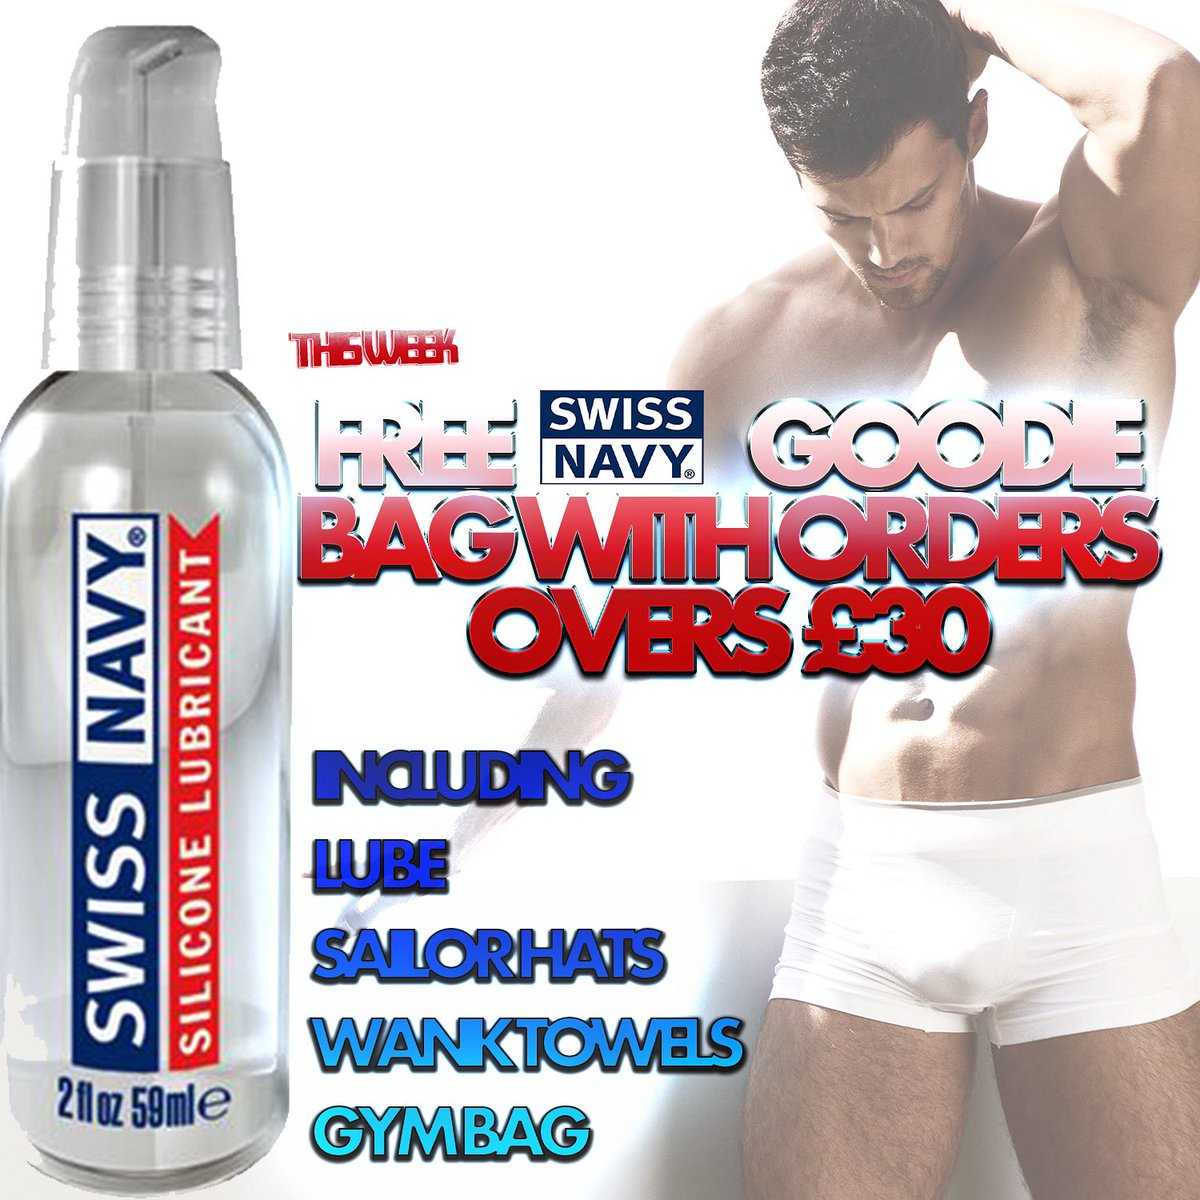 All this week, spend over £30 and get yourself a free goodie bag from @swissnavy - including lube samples, Swiss Navy sailor hat, wank towel and a gym bag for all your goodies to go in! shop now at jockparty.club/store